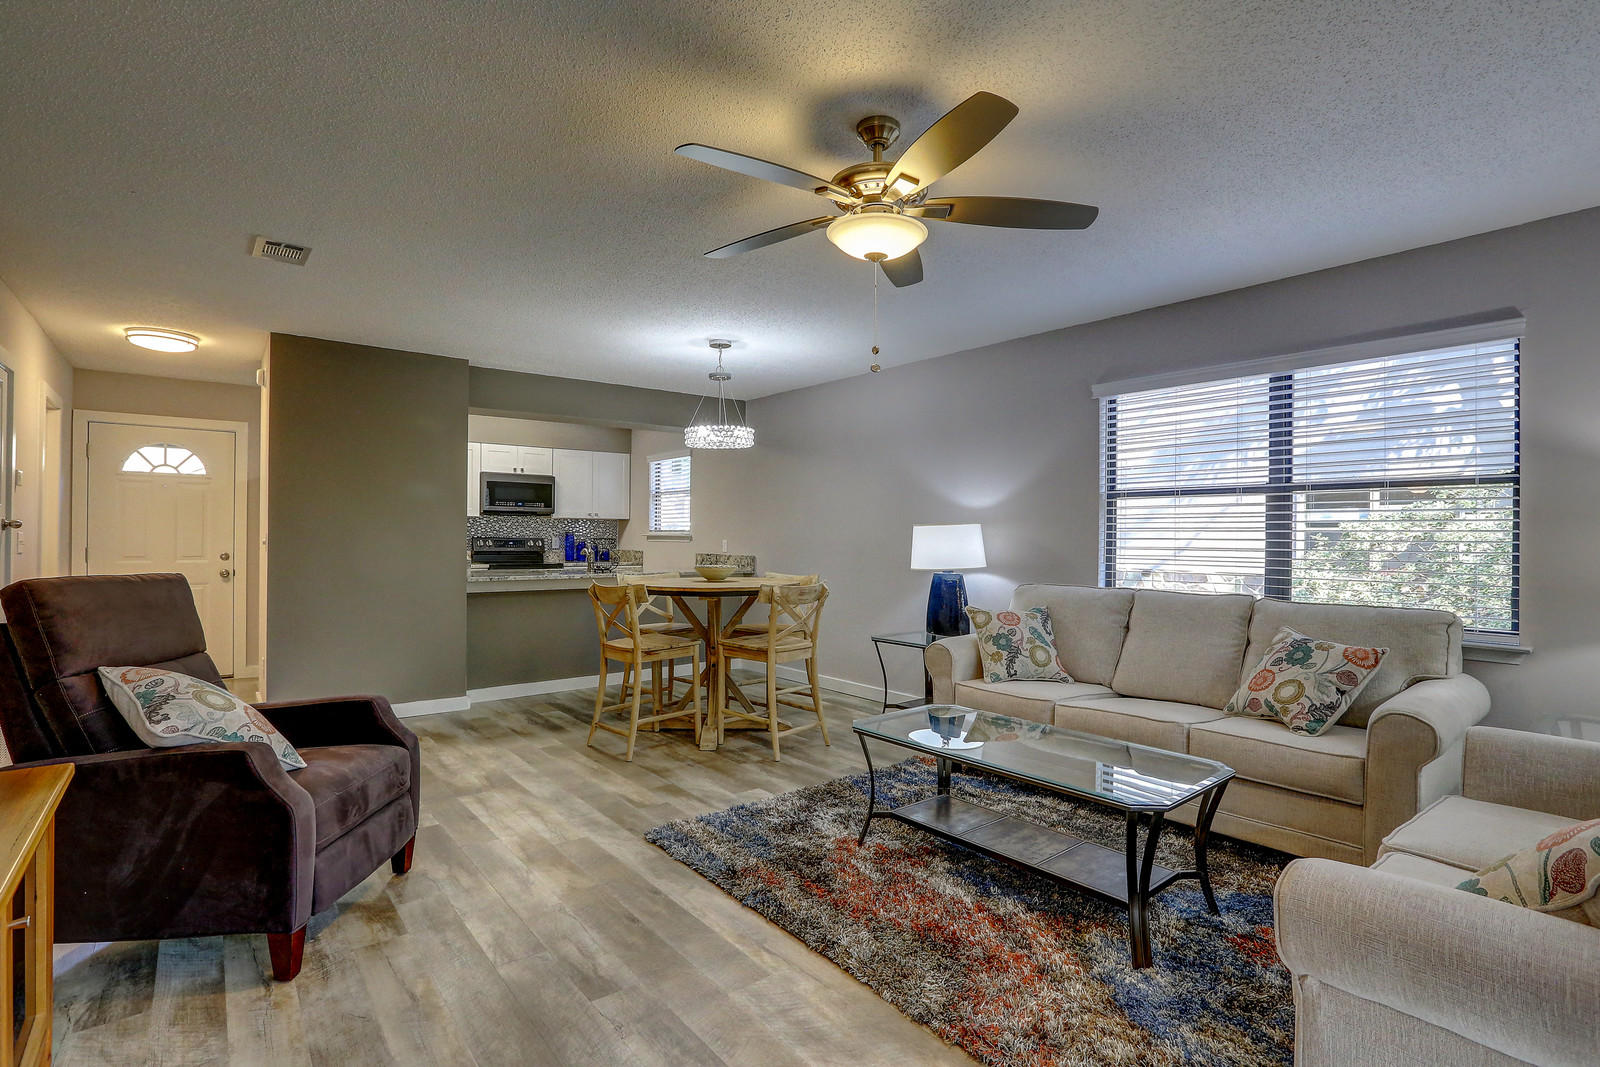 """Imagine sitting on your screened porch overlooking the forest, listening to the birds sing while planning your day at the beach. This fantastic townhome in Seagrove is located in Cassine Garden-a hidden jewel on 30A! Only 300 yards from the water, this unit has been renovated from top to bottom. Unit 184 is a sought-after larger end unit offering 2 bedrooms & 2 full baths upstairs with the living, dining, kitchen & powder room on first floor. Both full baths have been updated with new vanities, fashionable tile, fixtures & plumbing! All new furniture in the living/dining room is ready for you or your guests. Bedrooms have been left unfurnished for you to configure with bedding to fit your needs. New flooring, new paint, new appliances, new washer & dryer, light fixtures, tv, living & dining room furniture...so many that we've attached the list under """"Documents"""". Two screened porches assure you of relaxation in any season. Ample storage is unique to these townhomes â"""" 3 outdoor storage rooms for your beach toys, bikes, etc. Just yards from Beach access, restaurants, shopping and biking distance to Seaside. This fabulous townhome is ready for you & your family!"""